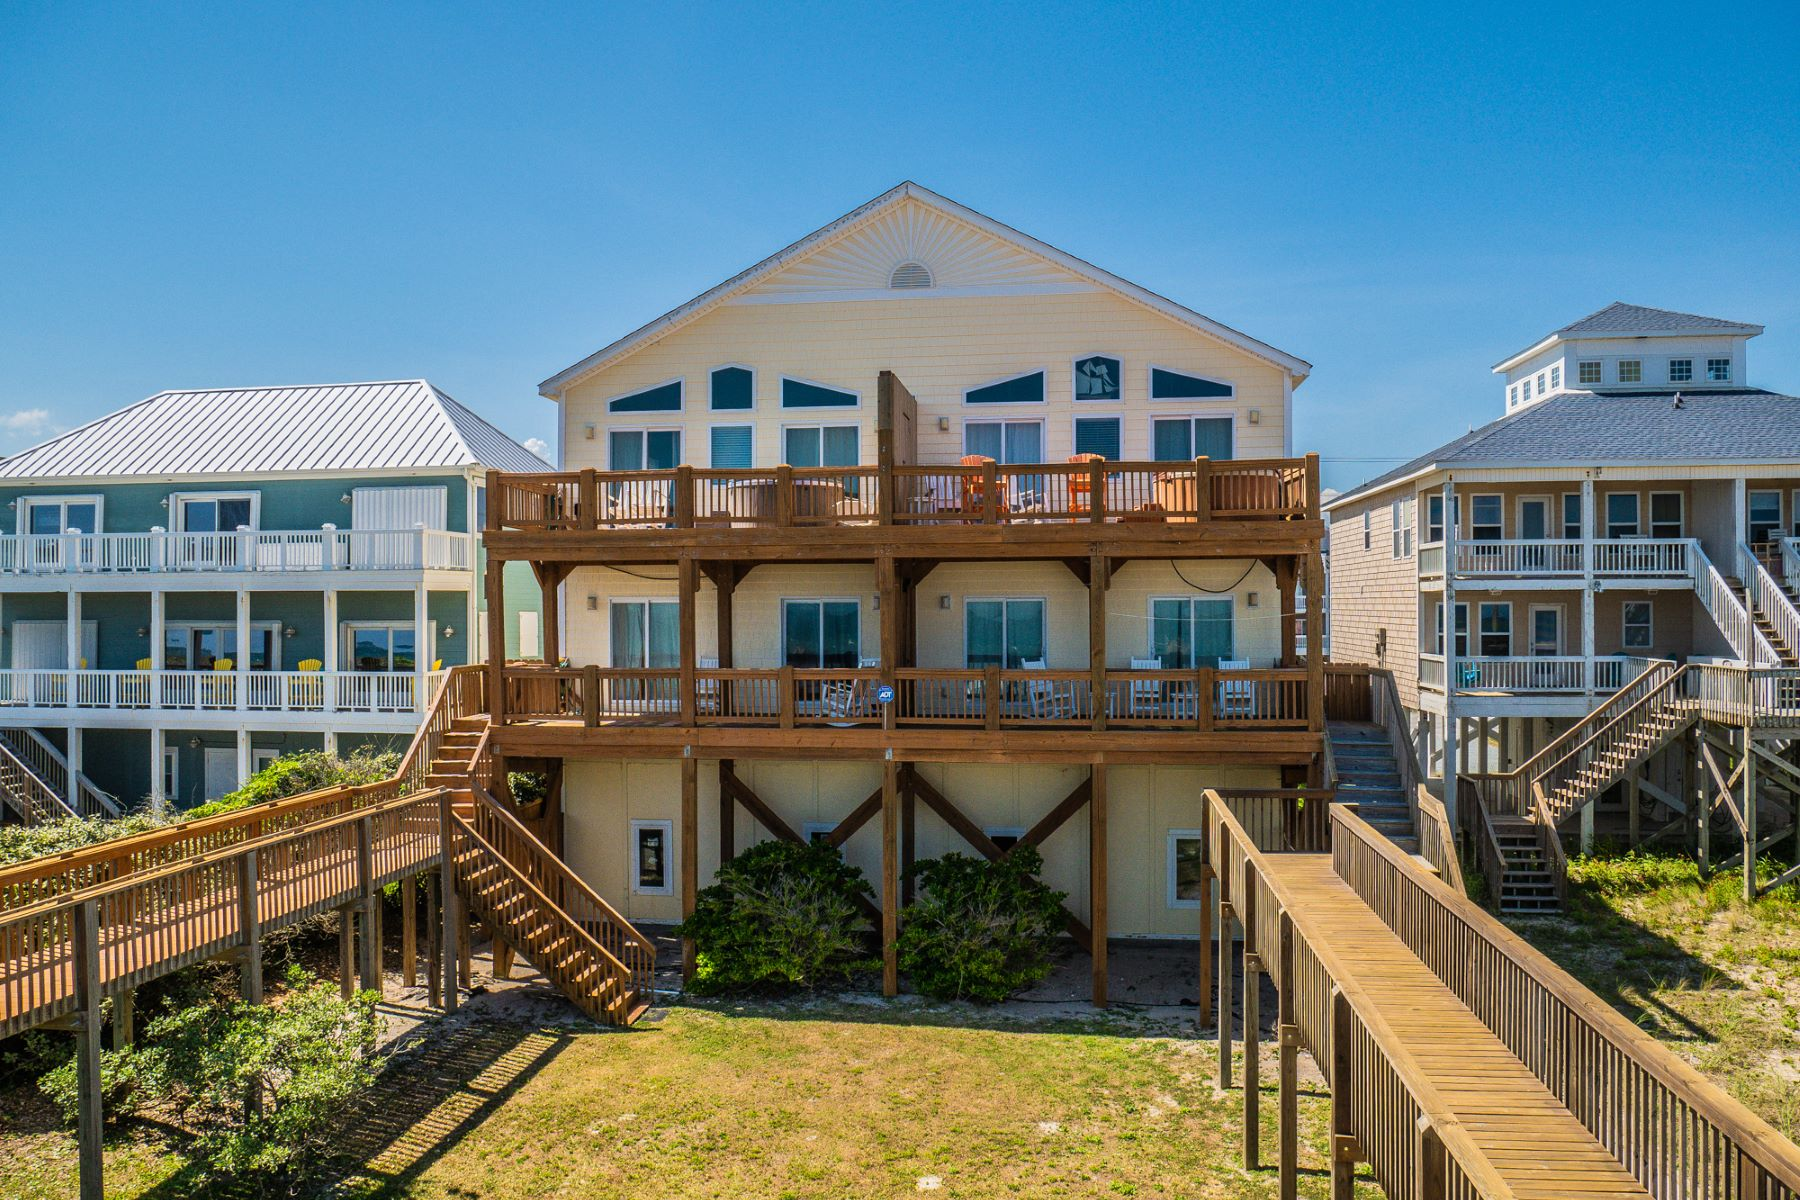 Single Family Homes for Sale at Family Oceanfront Getaway in North Topsail 3726 Island Drive N Topsail Beach, North Carolina 28460 United States